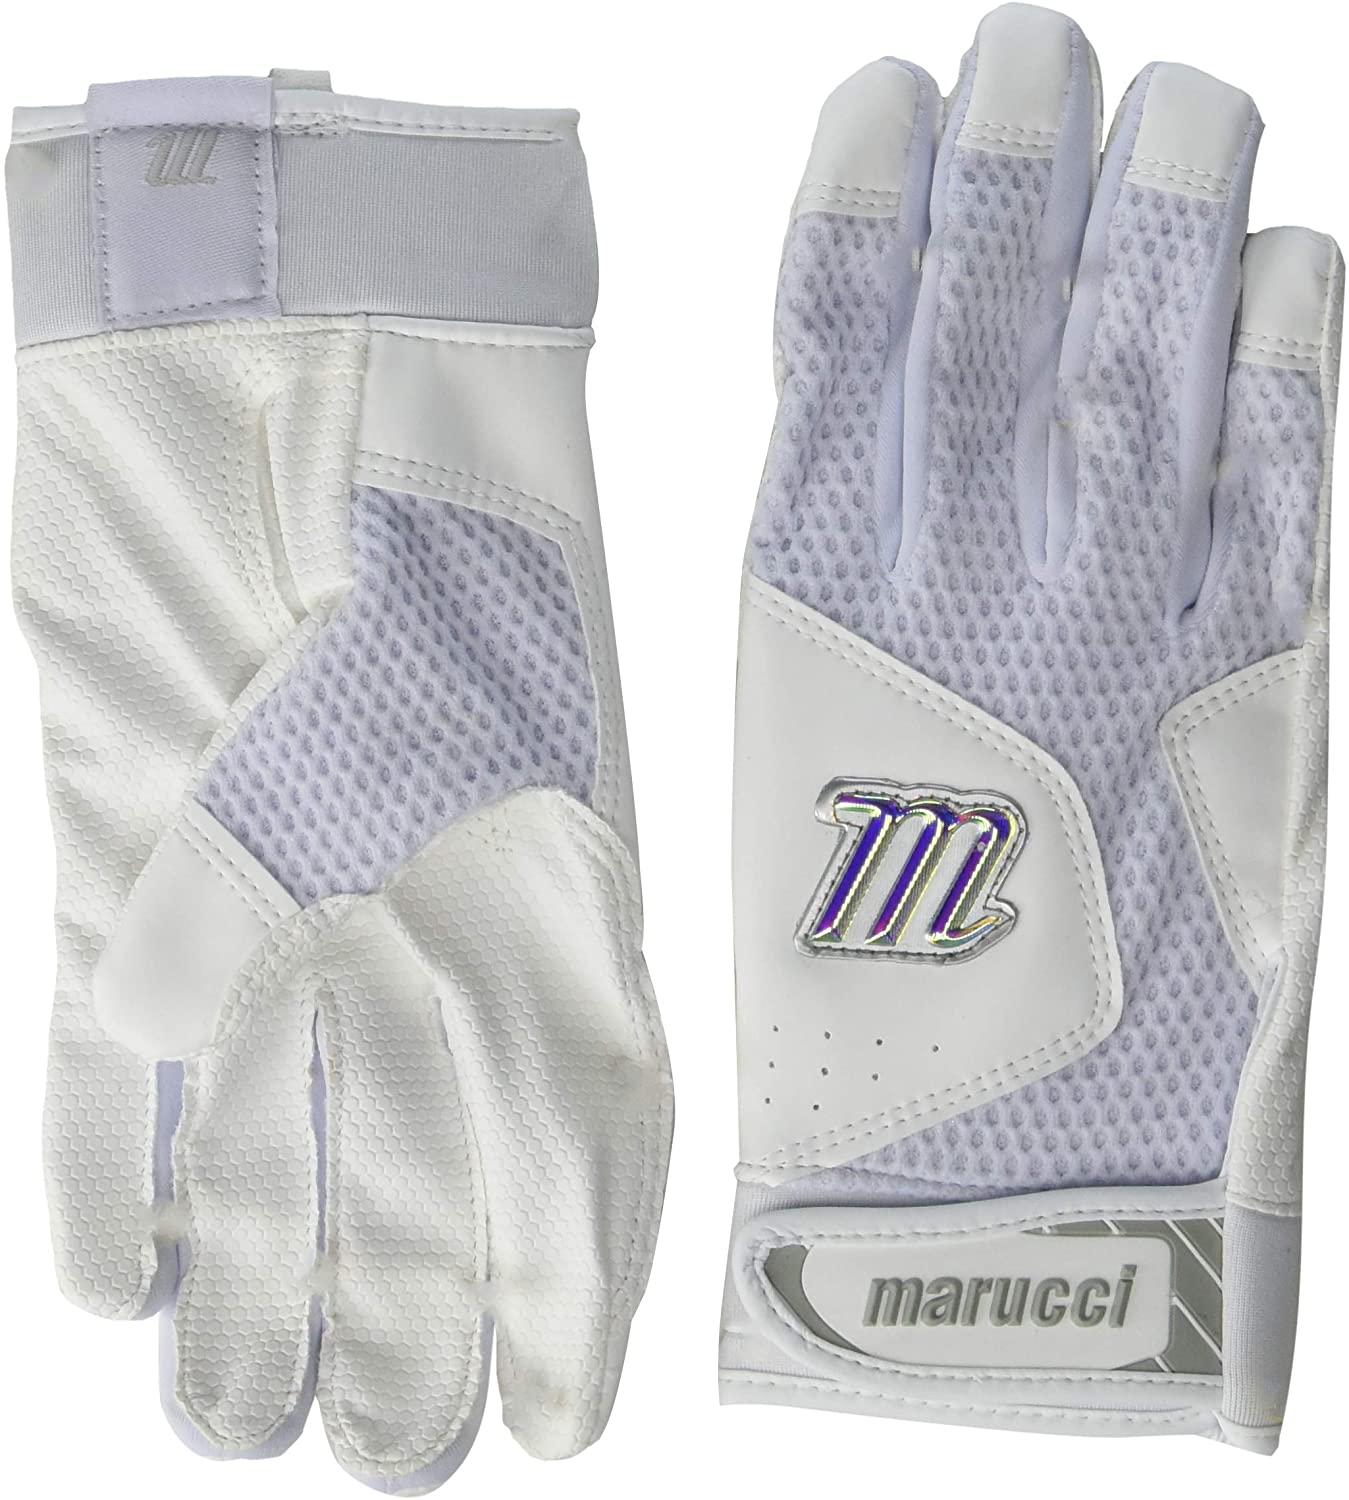 marucci-mbgqst2y-ww-ym-youth-quest-2-batting-gloves-youth-medium MBGQST2Y-WW-YM Marucci  Consistency and craftsmanship Commitment to quality and understanding of players Designed